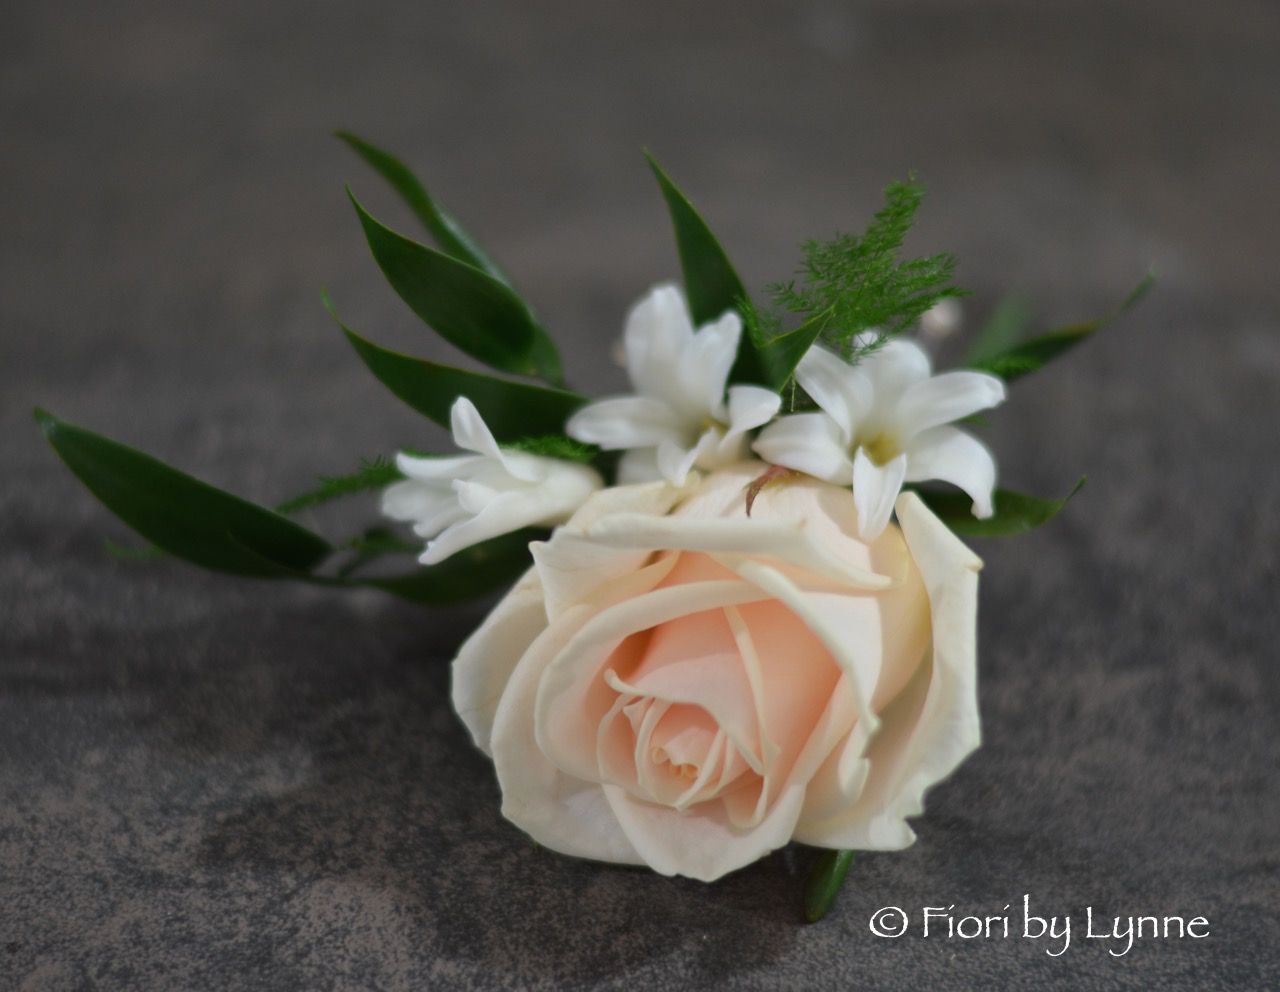 buttonhole-nude-rose-white-hyacinth-pip.jpg